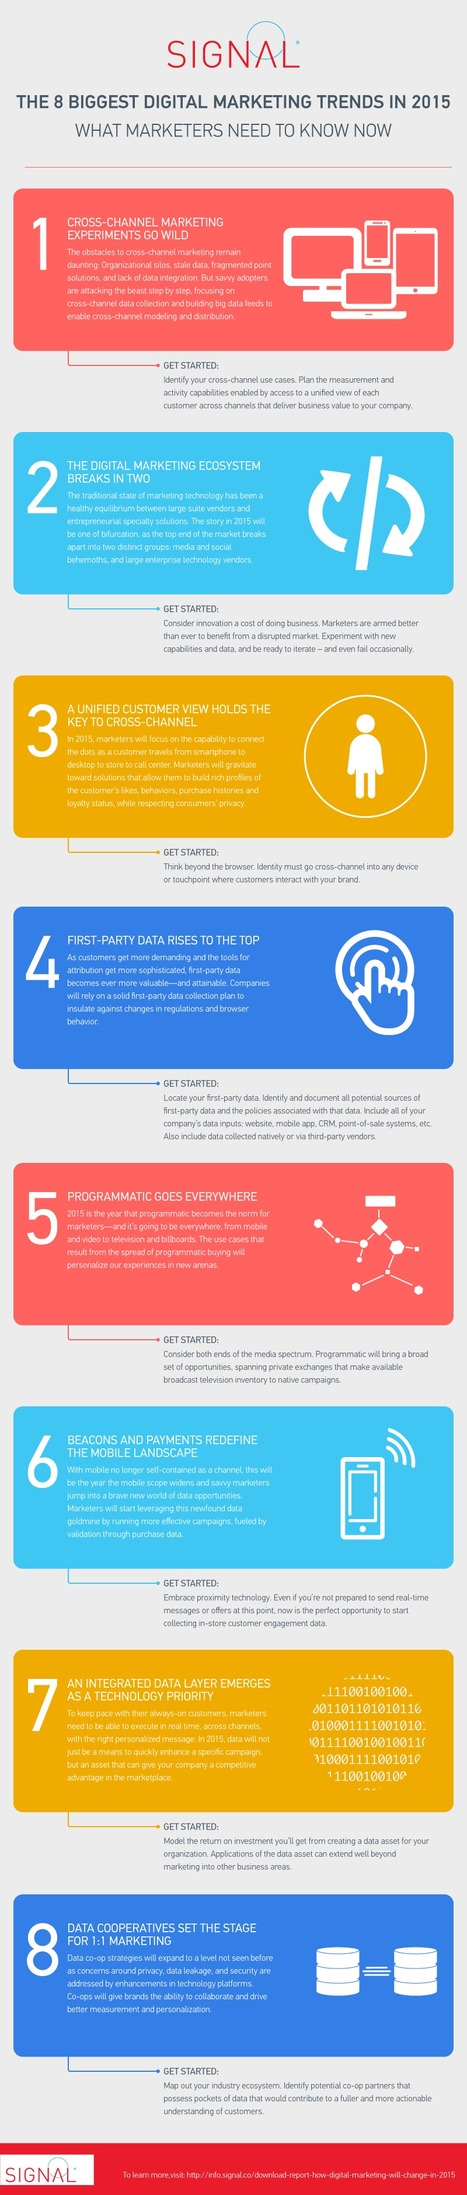 8 Advanced Trends In Social And Digital Marketing (Infographic) | Designing  service | Scoop.it